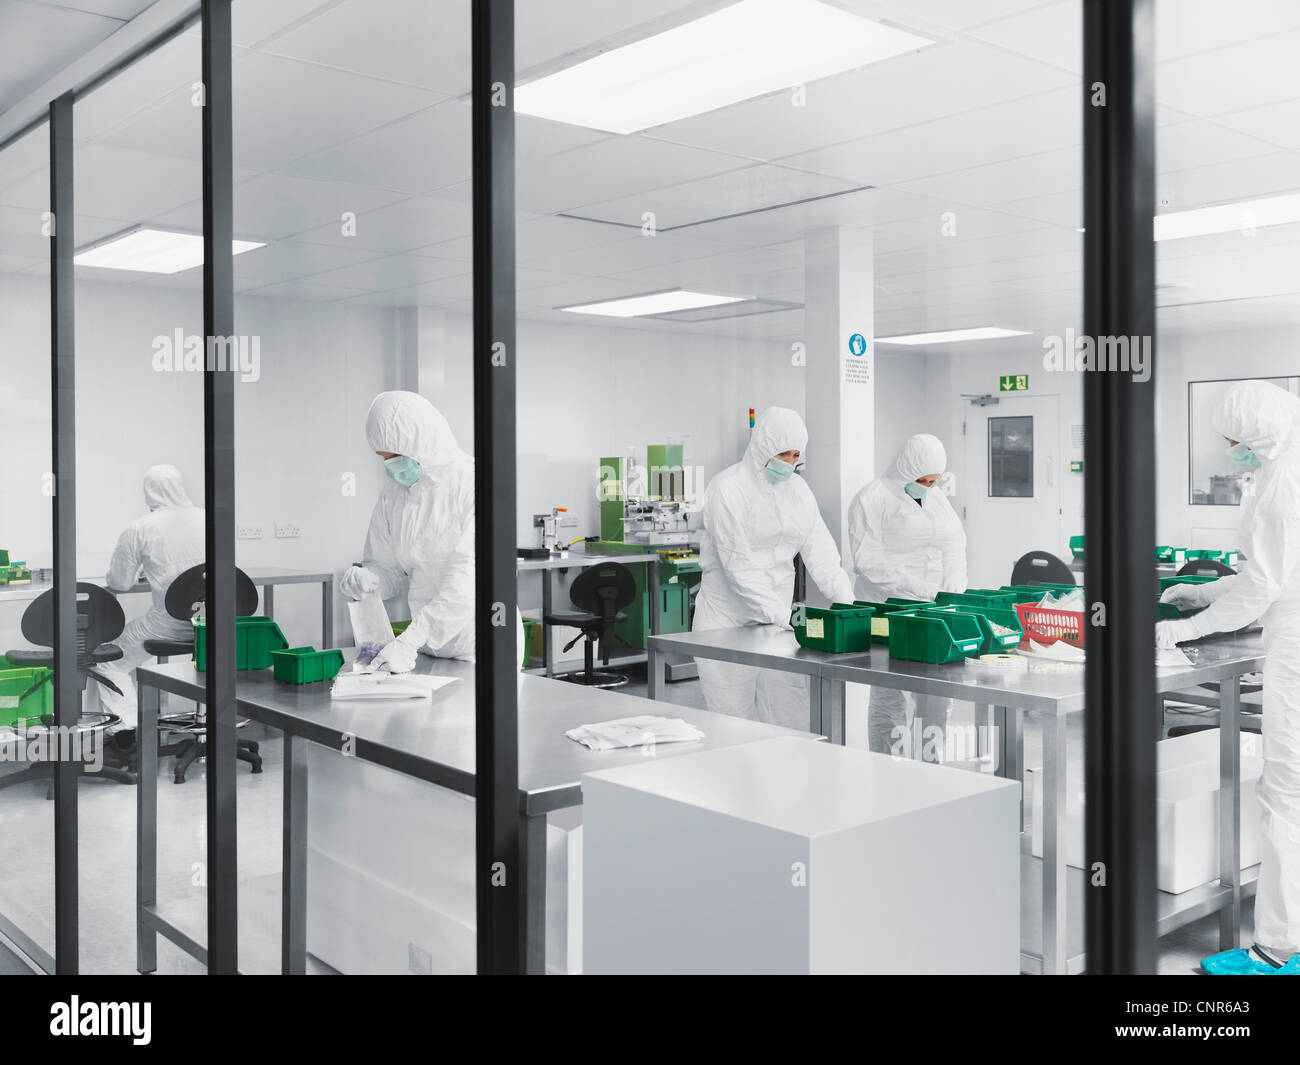 Scientists working in lab - Stock Image